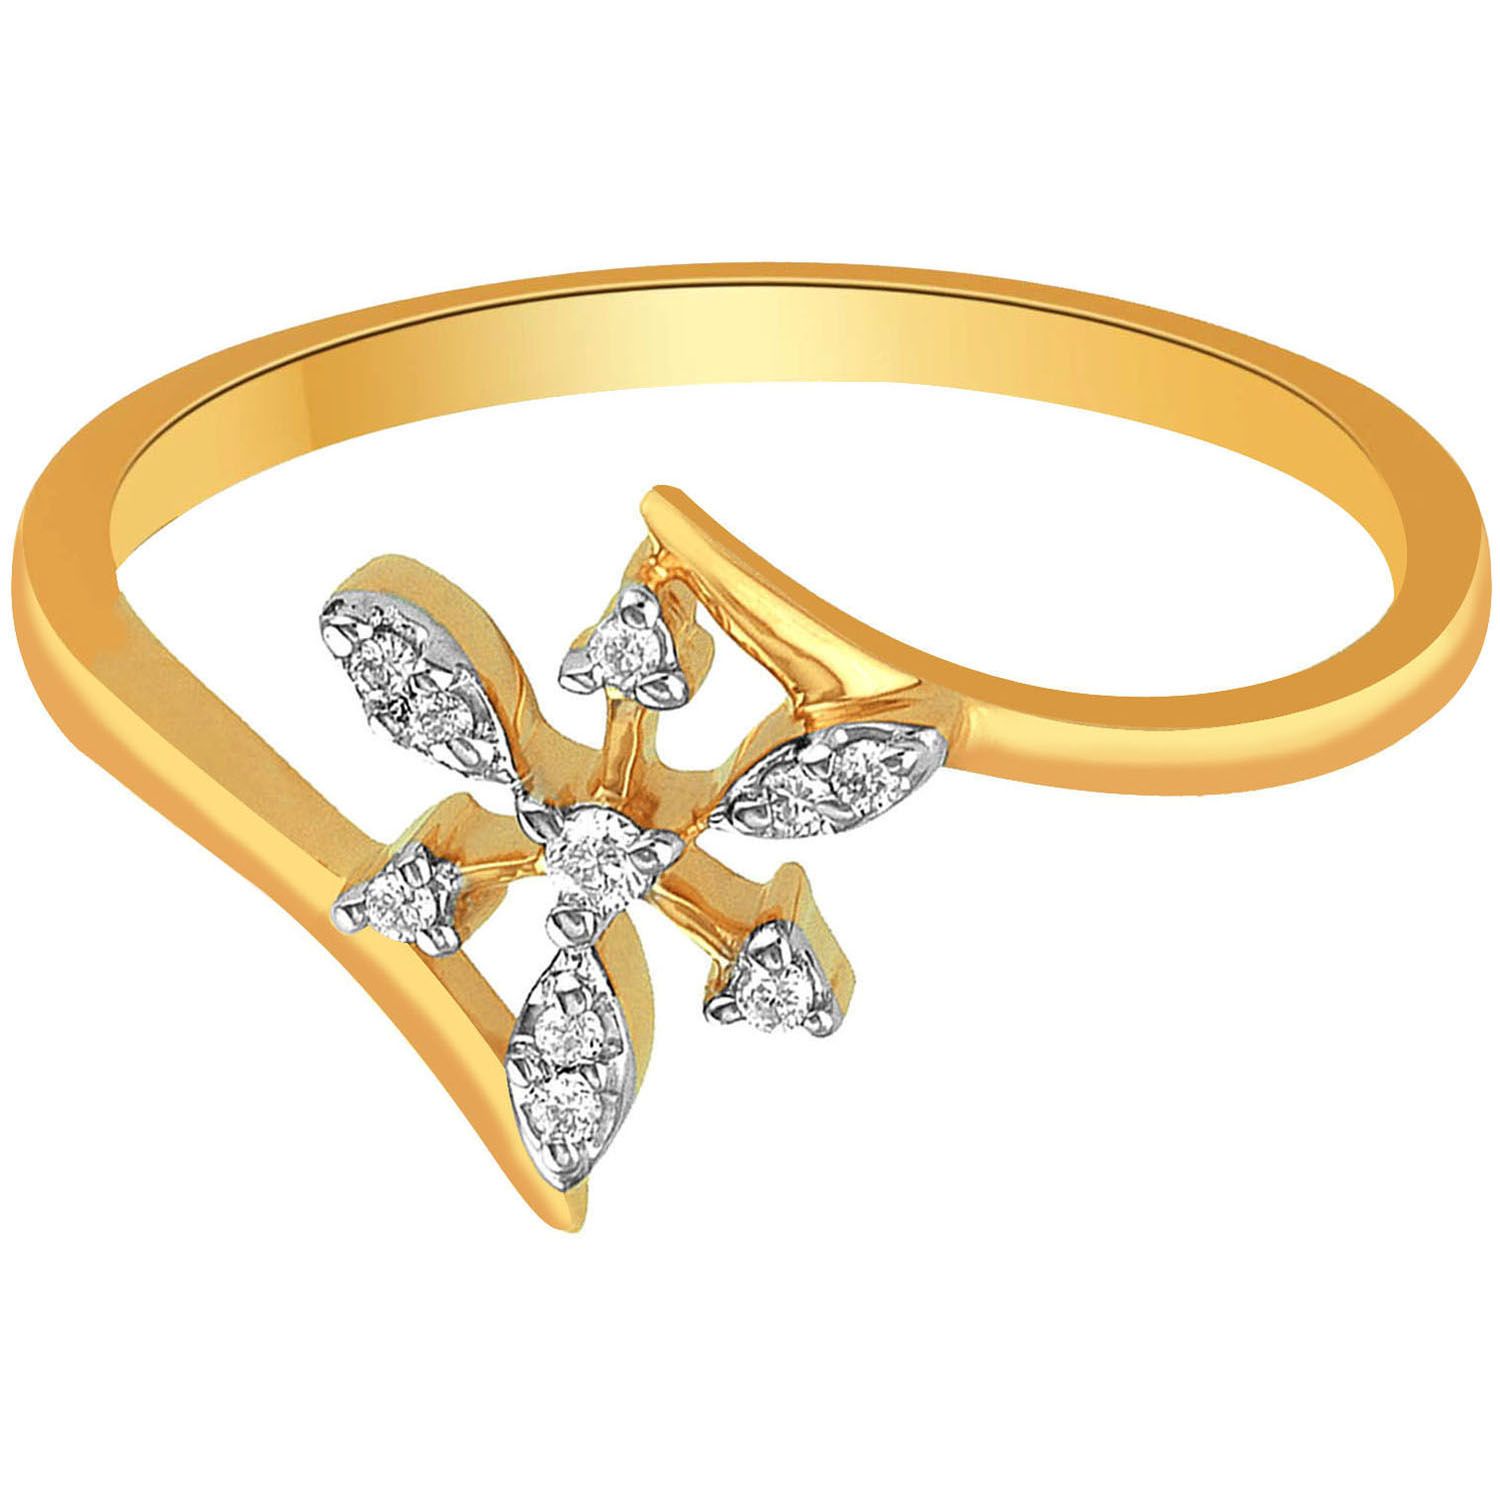 Asmi Diamond Rings Asmi Diamond Jewellery Ring